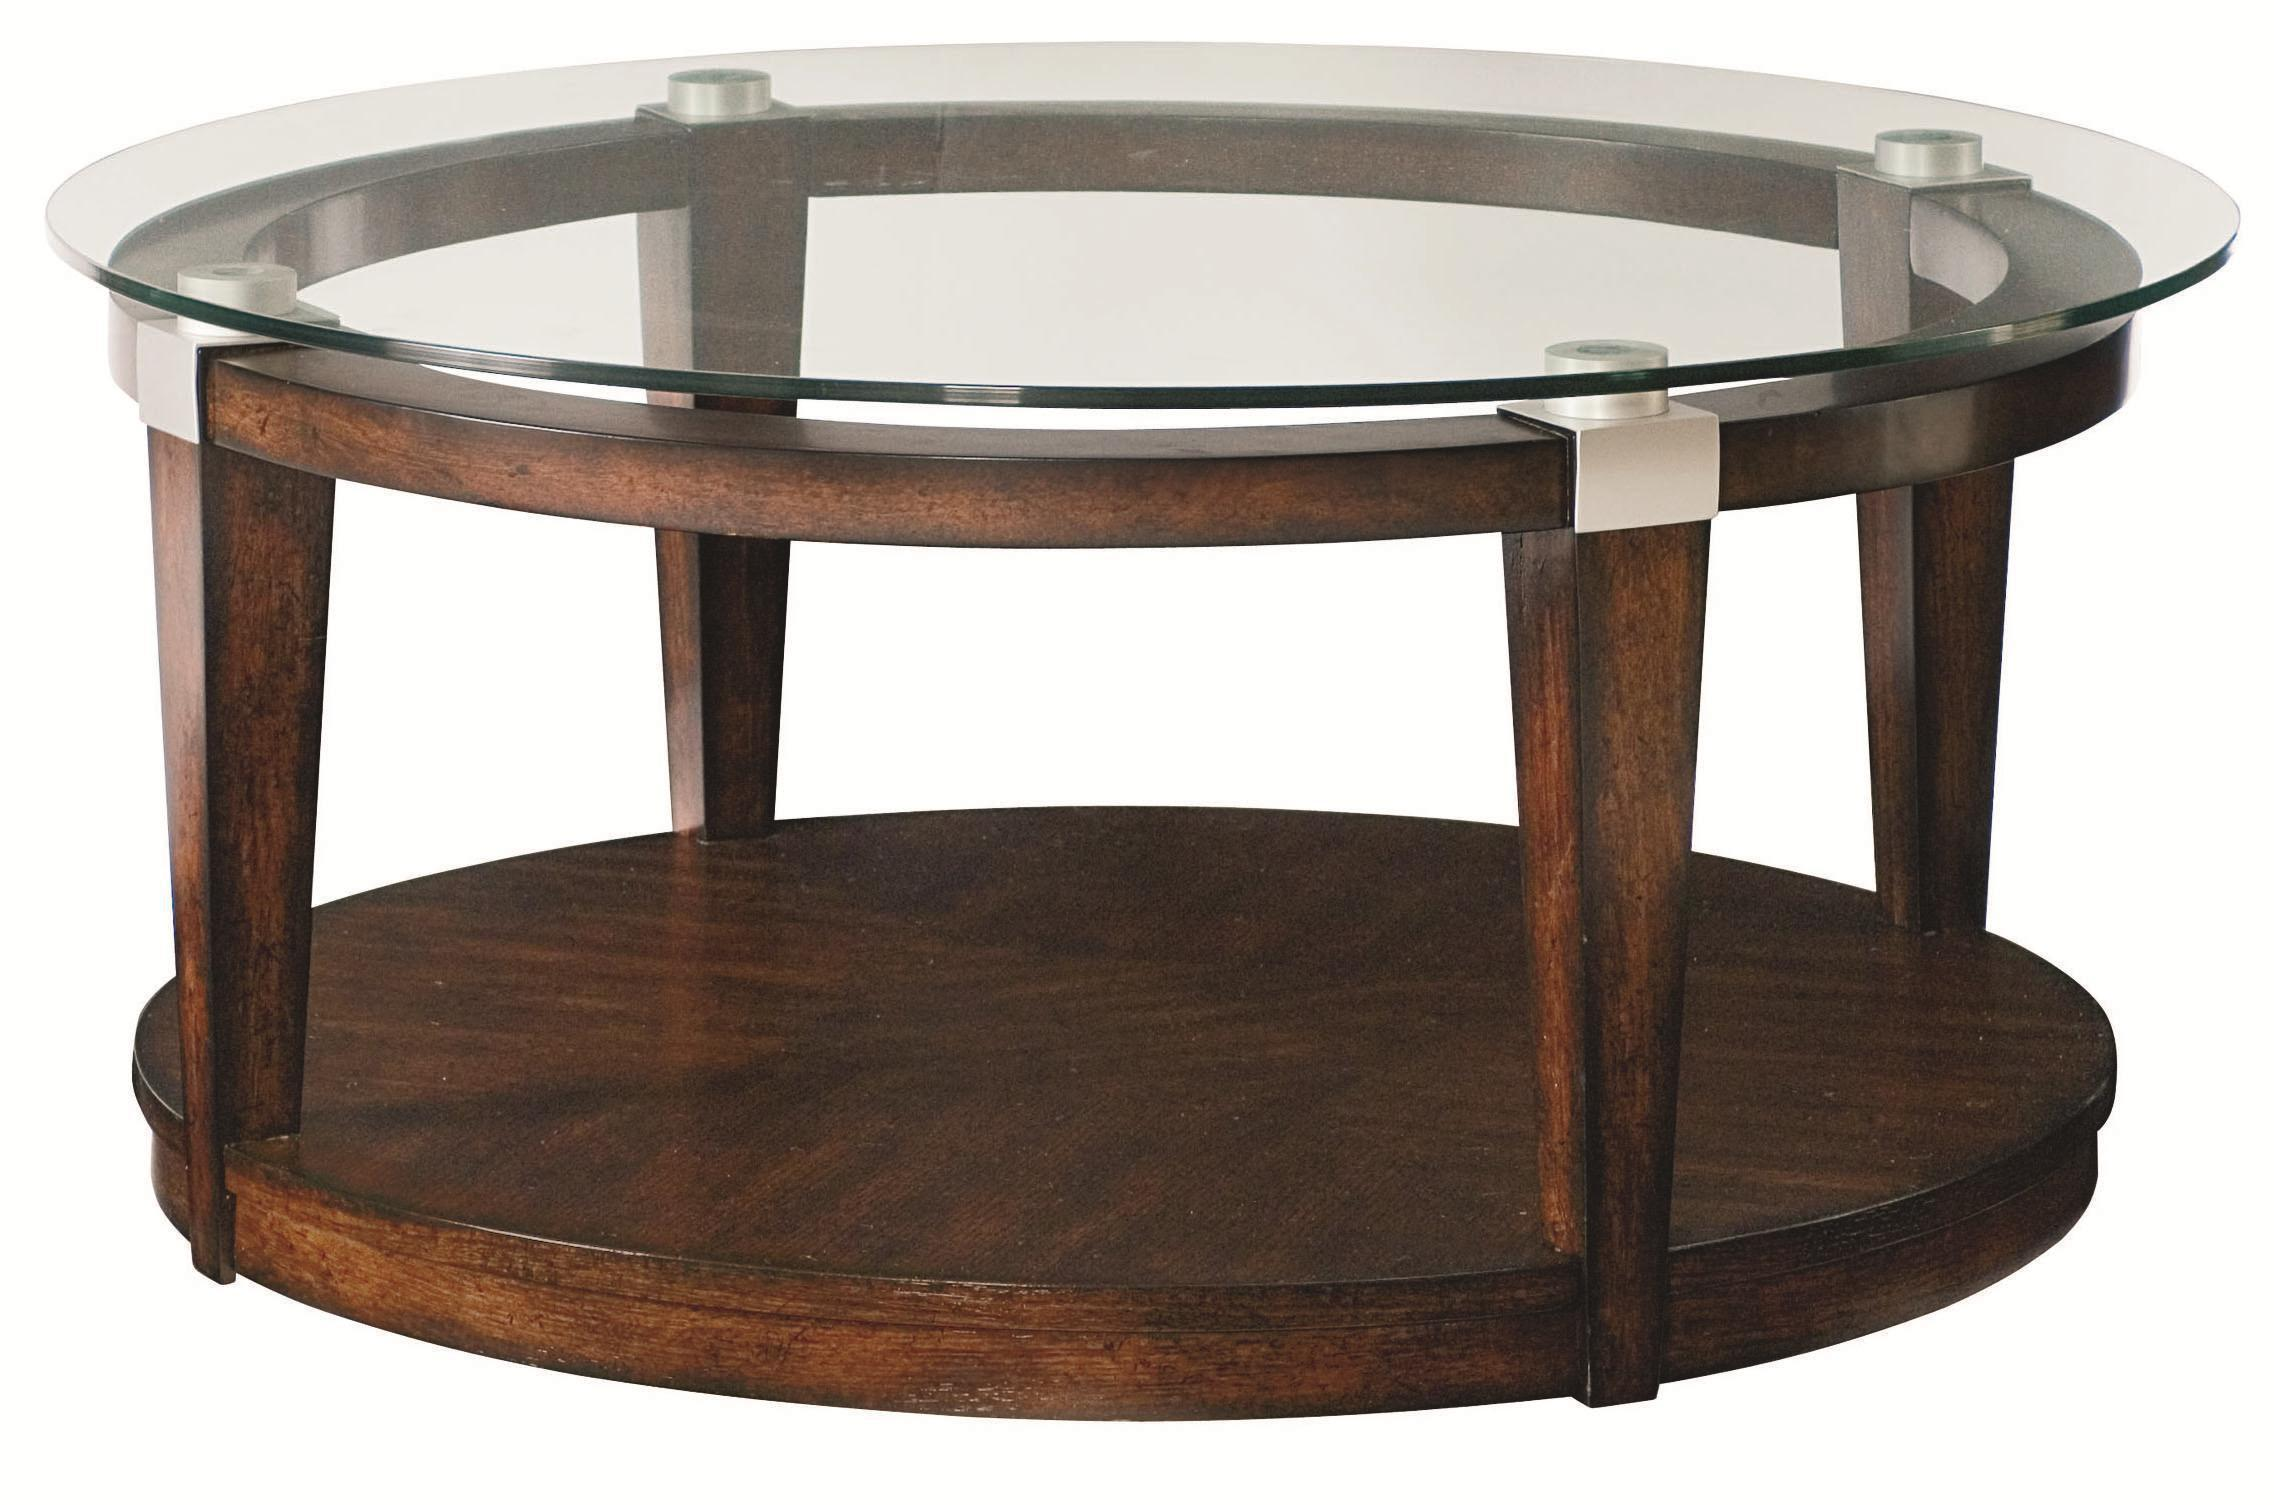 outstanding side console table wood and metal coffee unique glamorous tables end modern small round with glass top square inch cube tempered accent black lacquer mirror dark brown